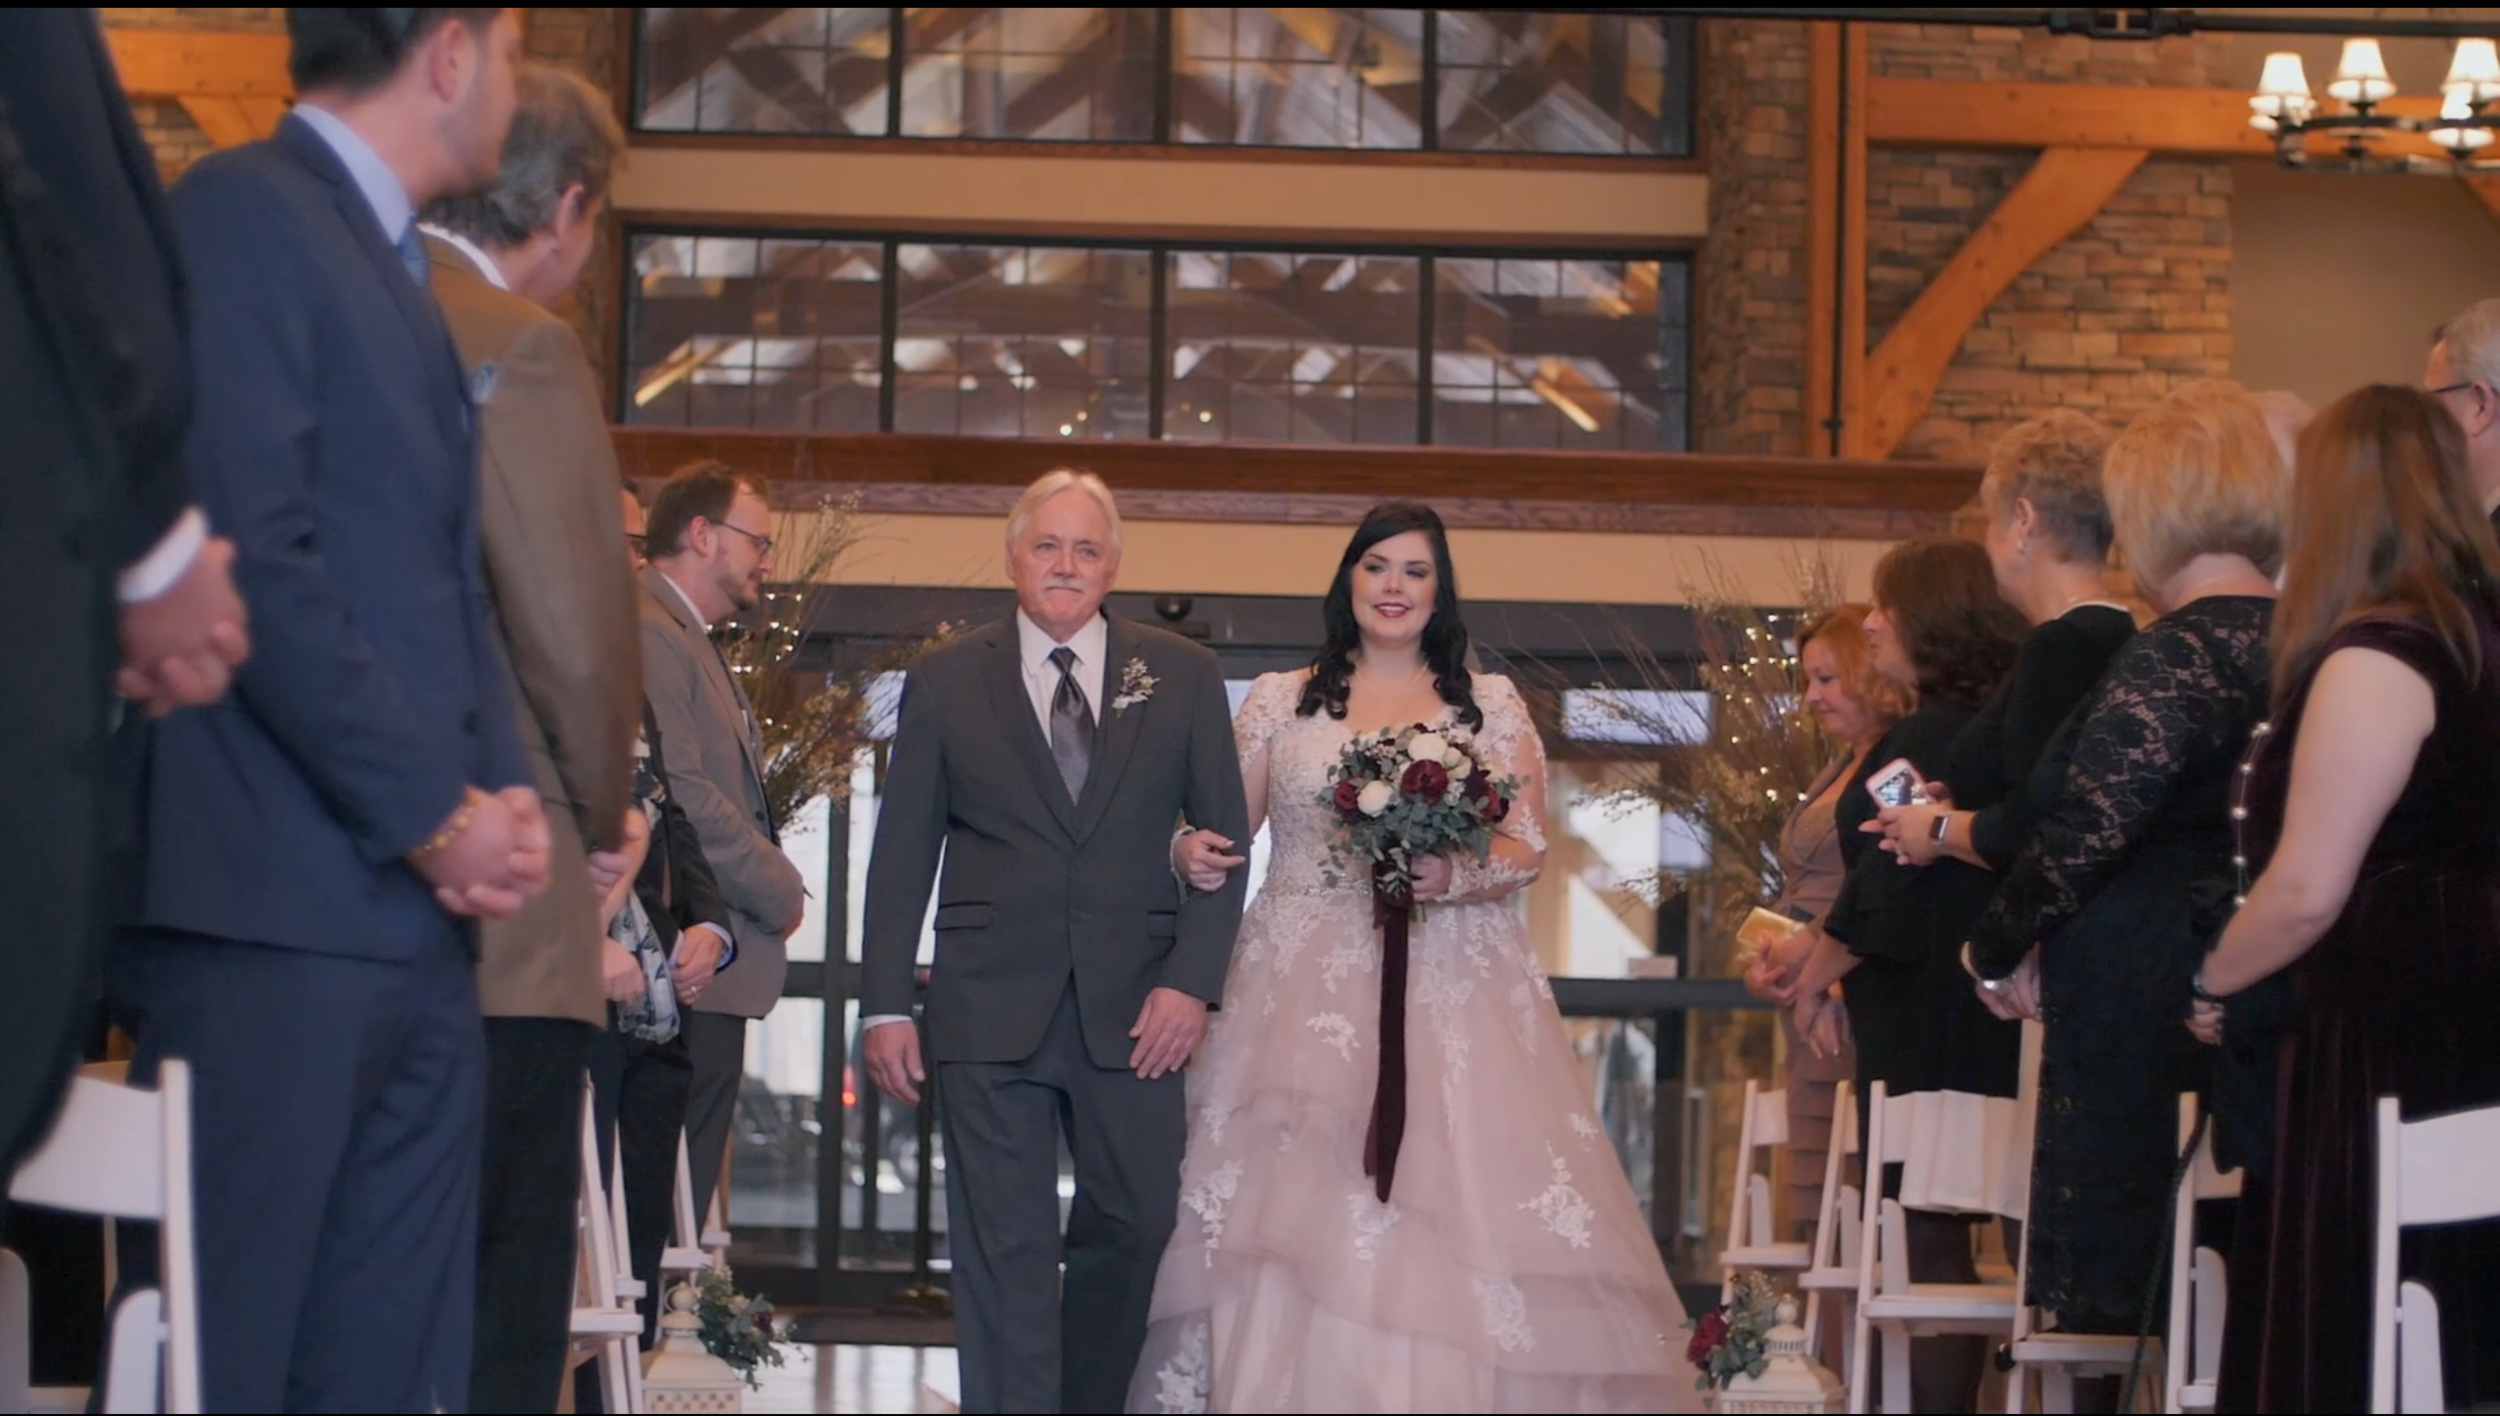 Bride aisle videography important moment winter stonewall indoor lobby